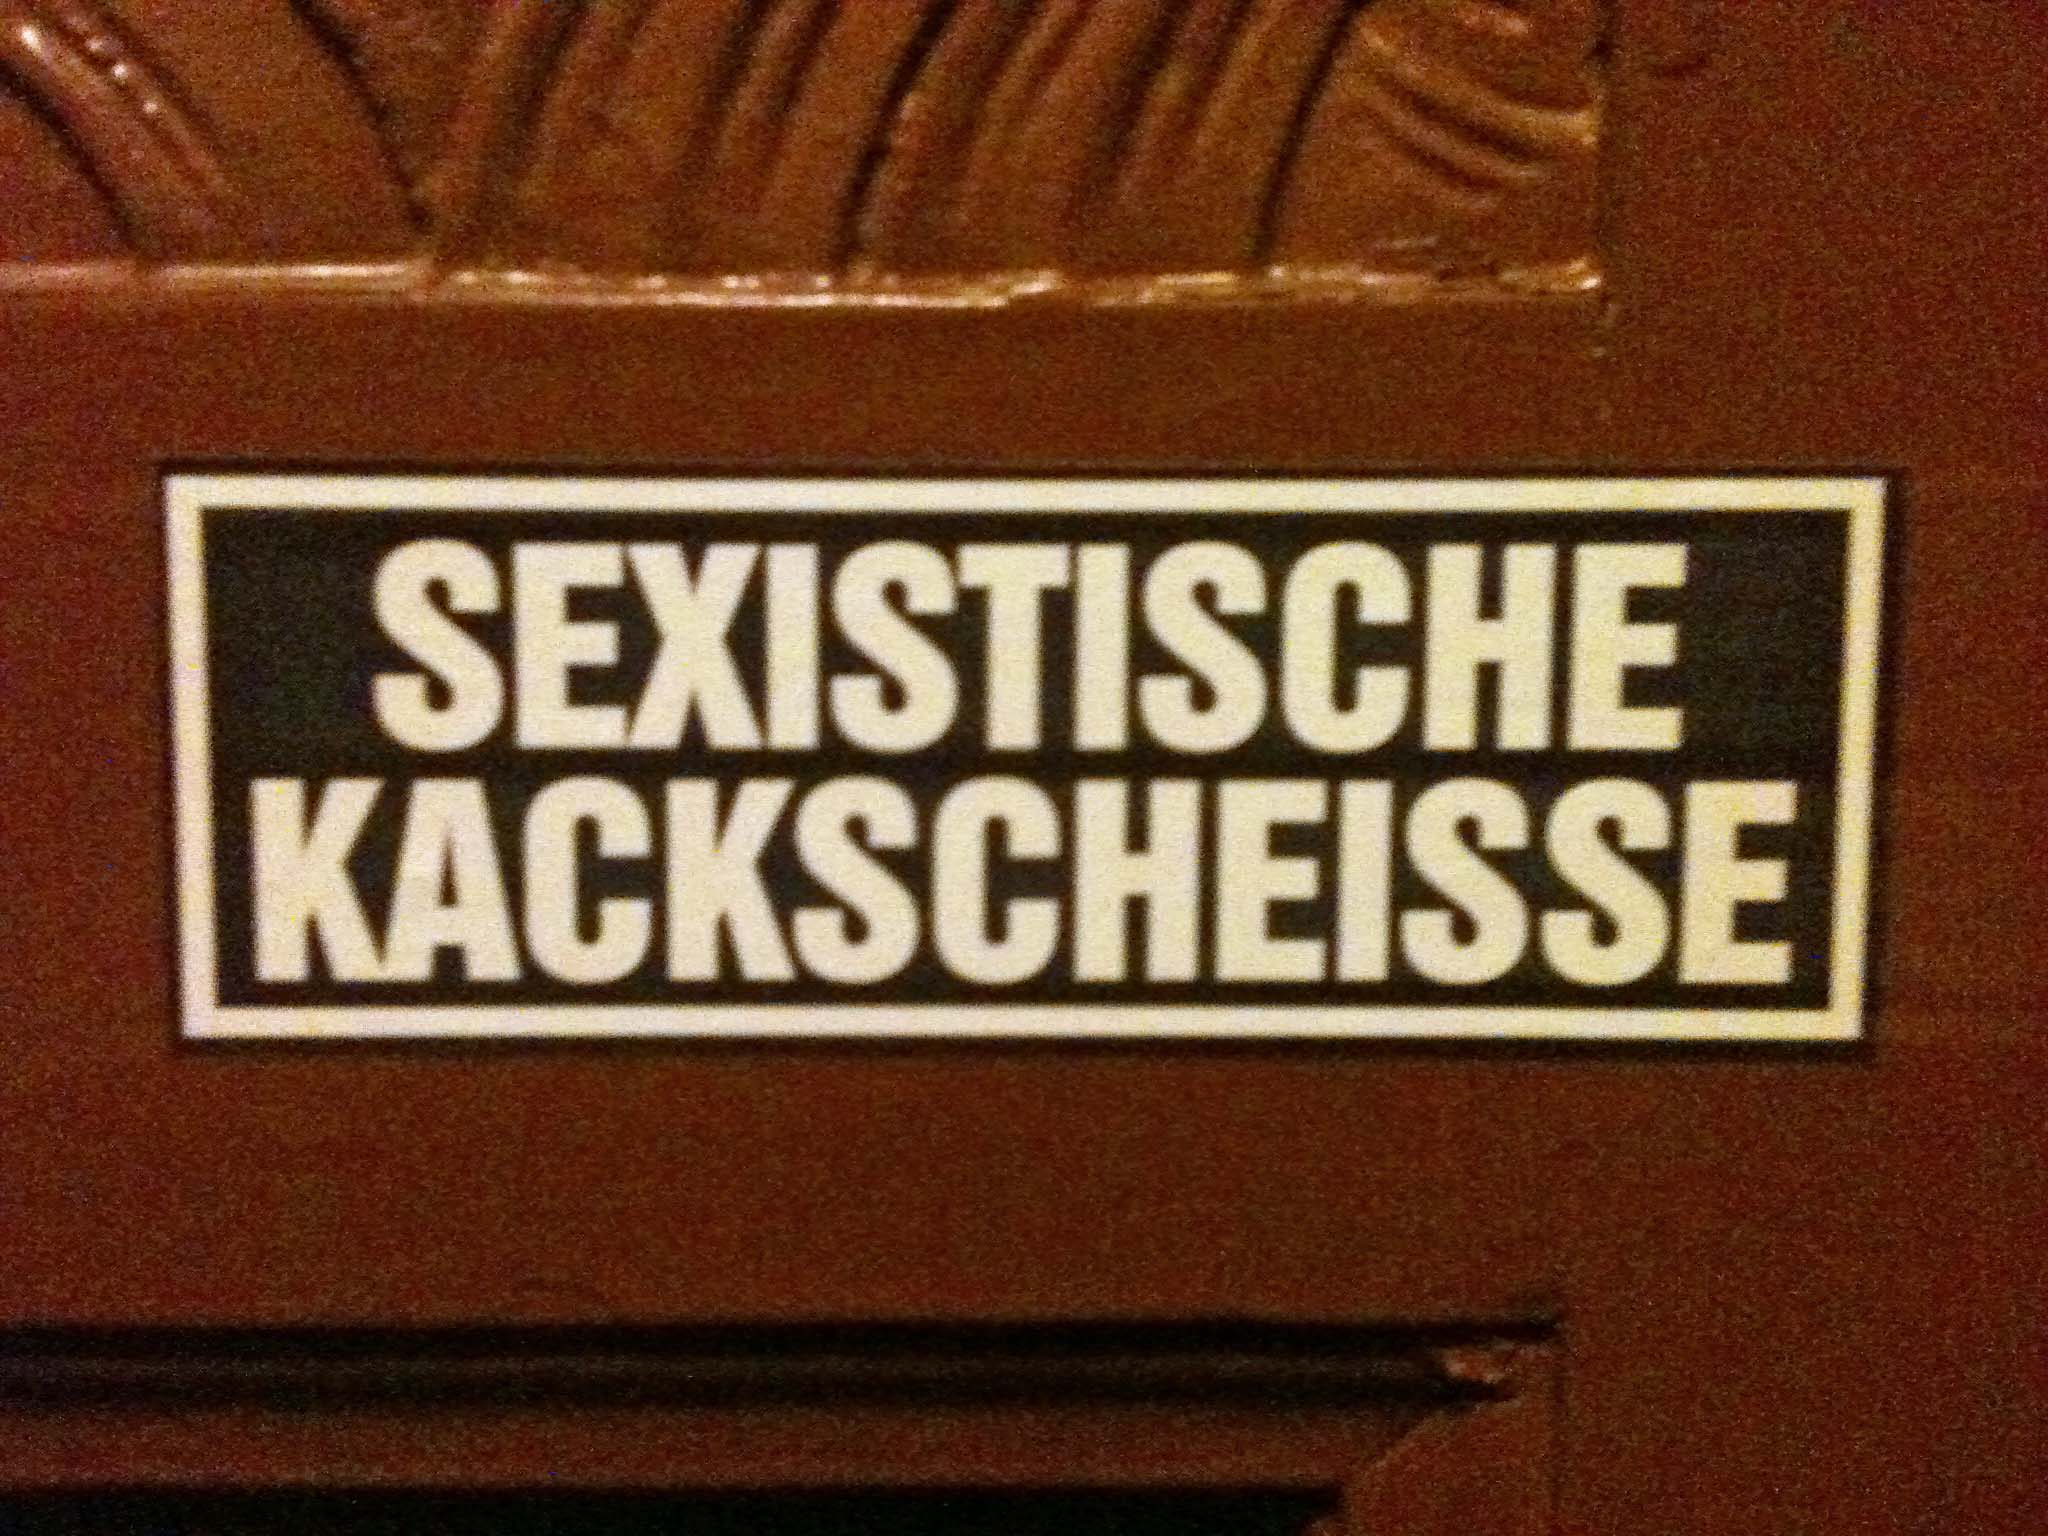 Sexistische Kackscheisse (Sexist Shit Shit) - Sticker in a Berlin apartment building